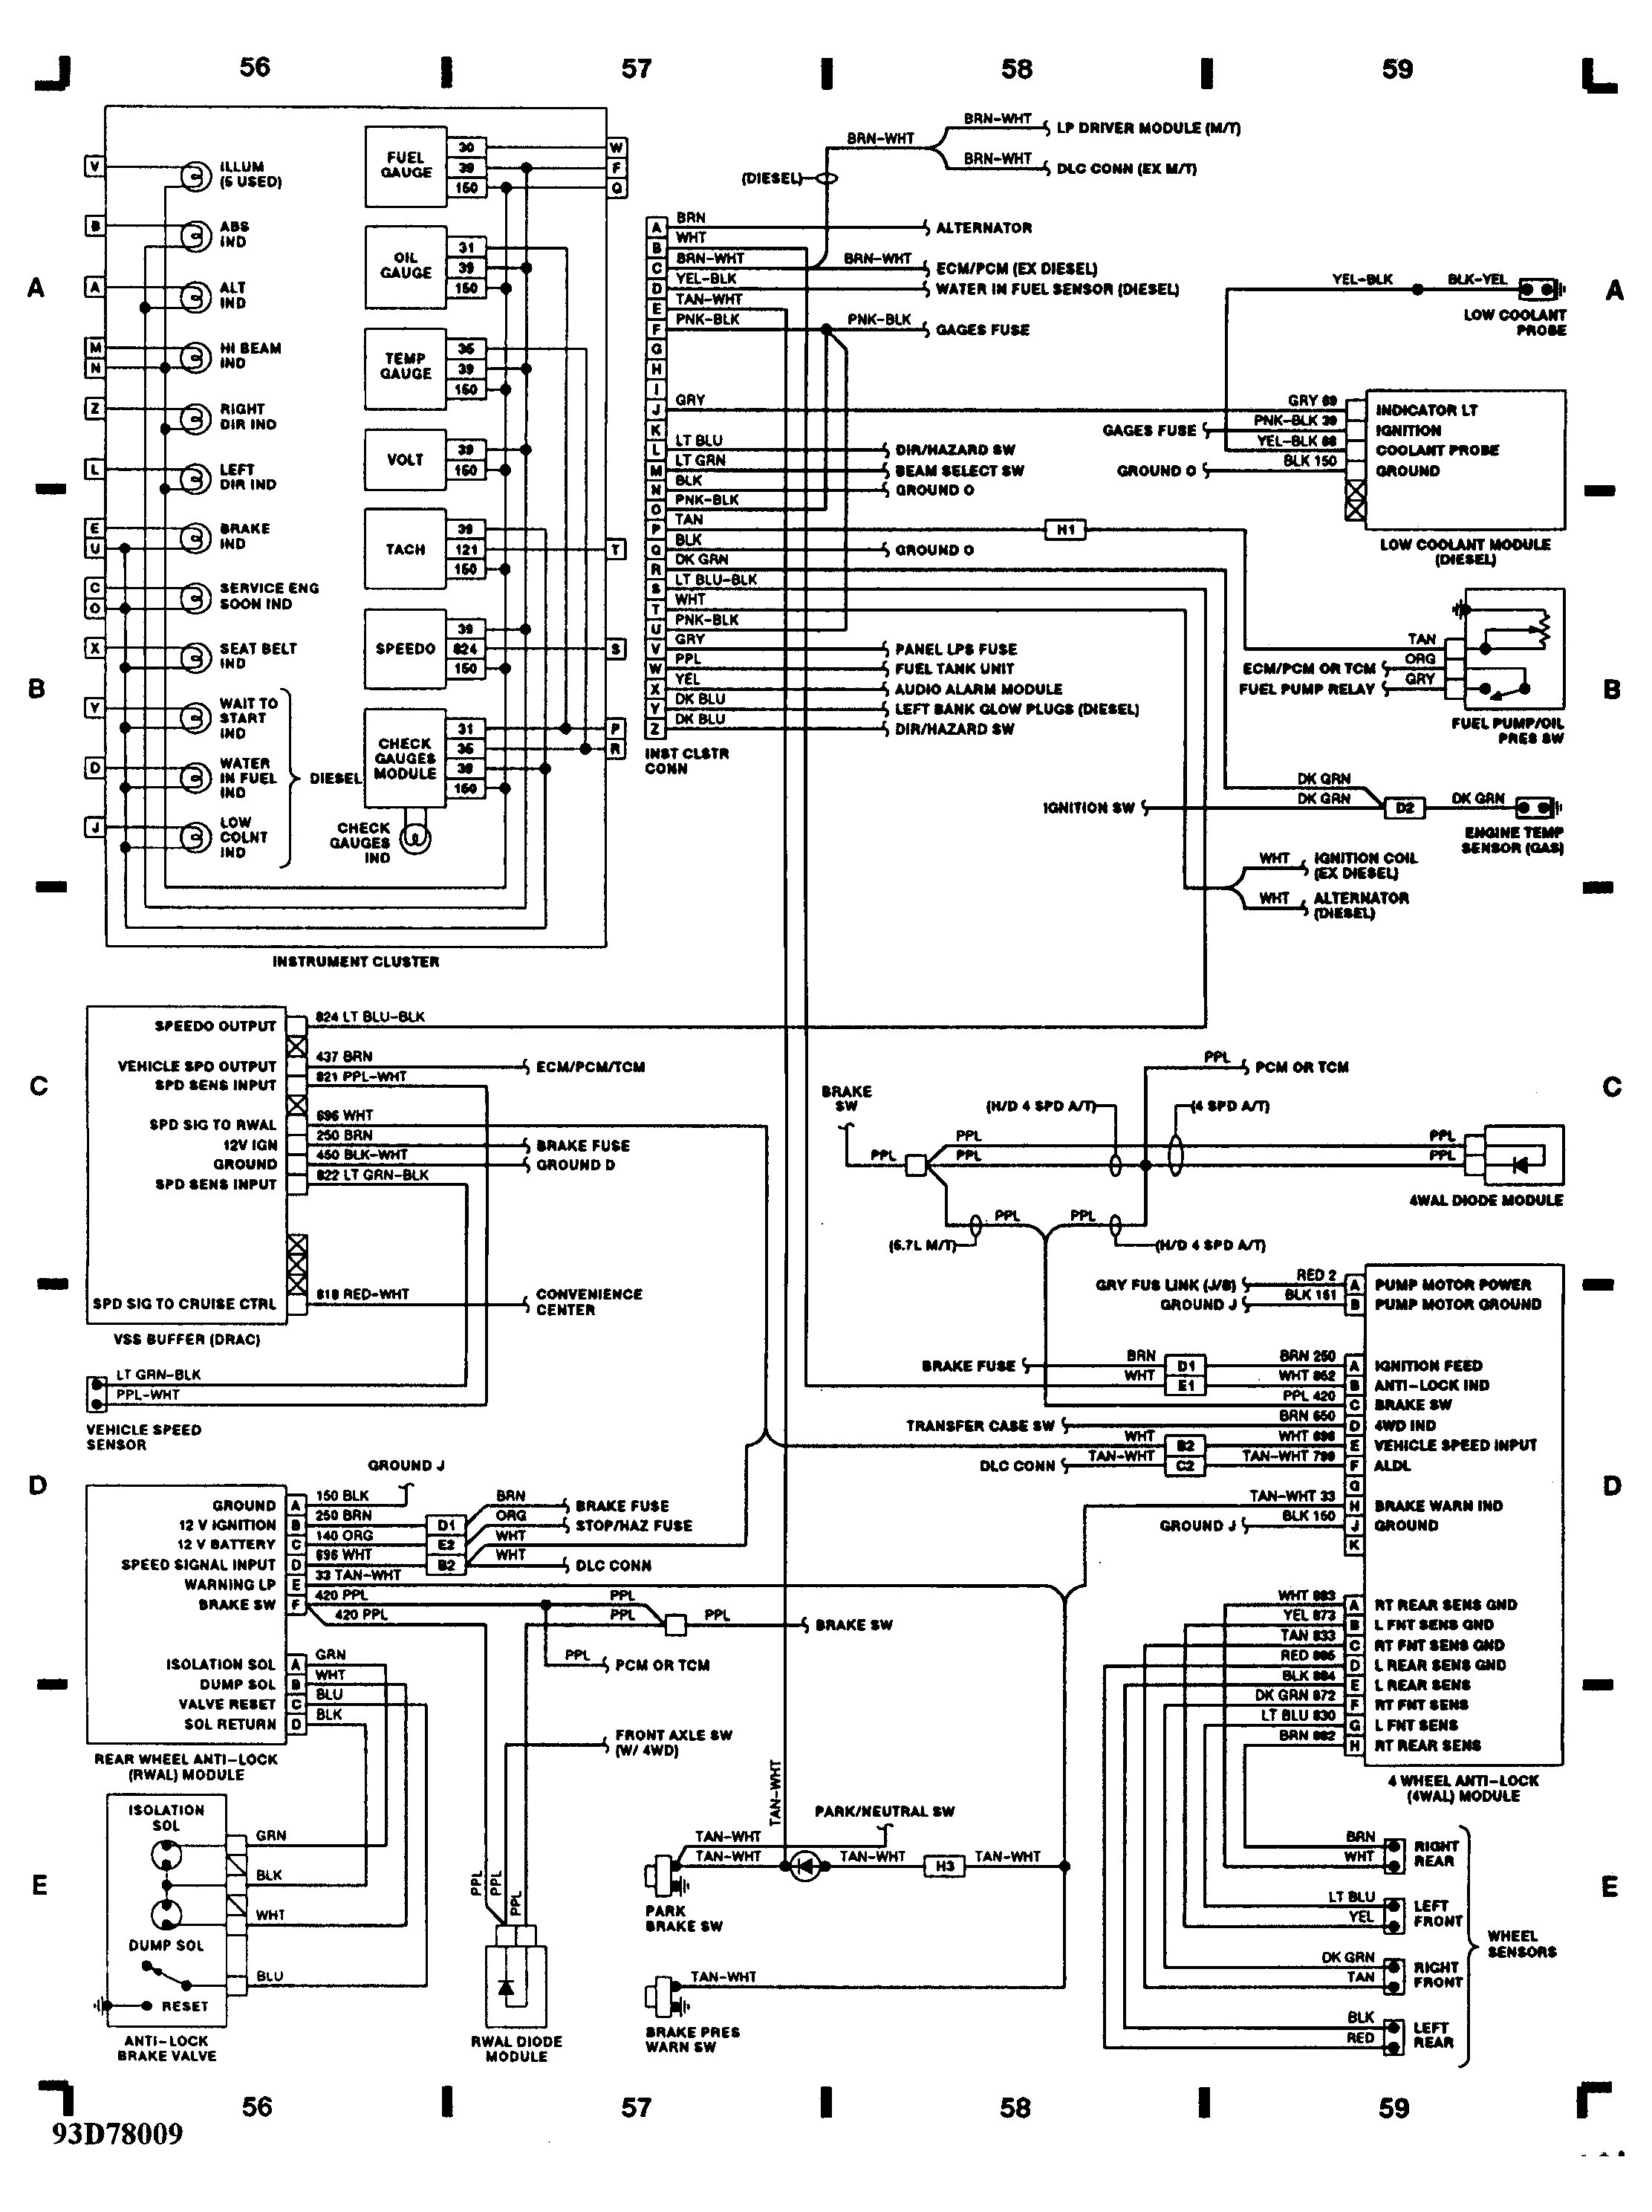 toyota soarer 1jz wiring diagram briggs and stratton ignition coil obd2b engine harness wilbo666 gte jzz30